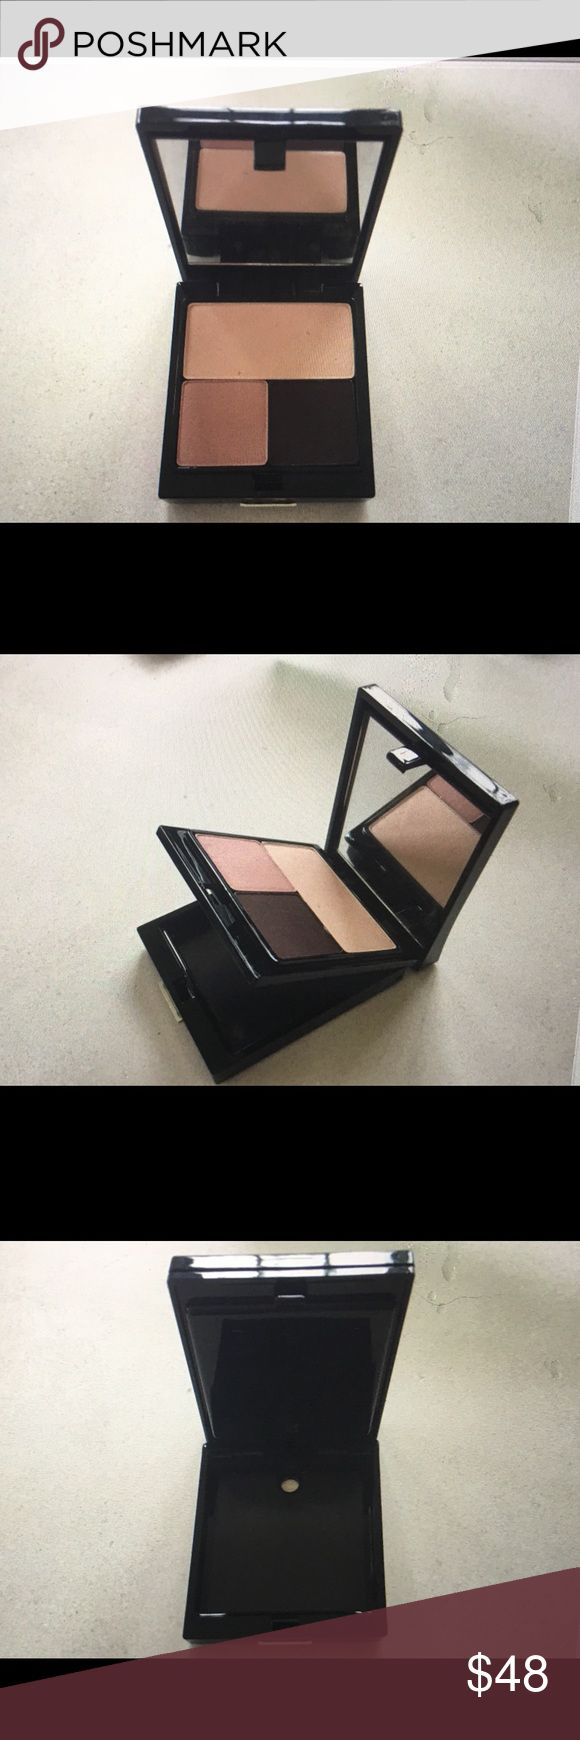 Trish McEvoy Double Decker Eye Shadow Pallet Brand new never been used. Only one left is a double decker Refillable Compact. This Compact includes 3 different Trish McEvoy Eye Shadows. The bottom is empty and can be filled with Trish McEvoy Bronzer, cheek color and more. This is part of Trish McEvoy magnetic color system. The 3 eye shadows are Deluxe Soft Peach 22.50, Glaze Rose Quartz 18.50 & Definer Deep Aubergine 18.59 plus the Compact. The total is $118.00 Trish McEvoy Makeup Eyeshadow